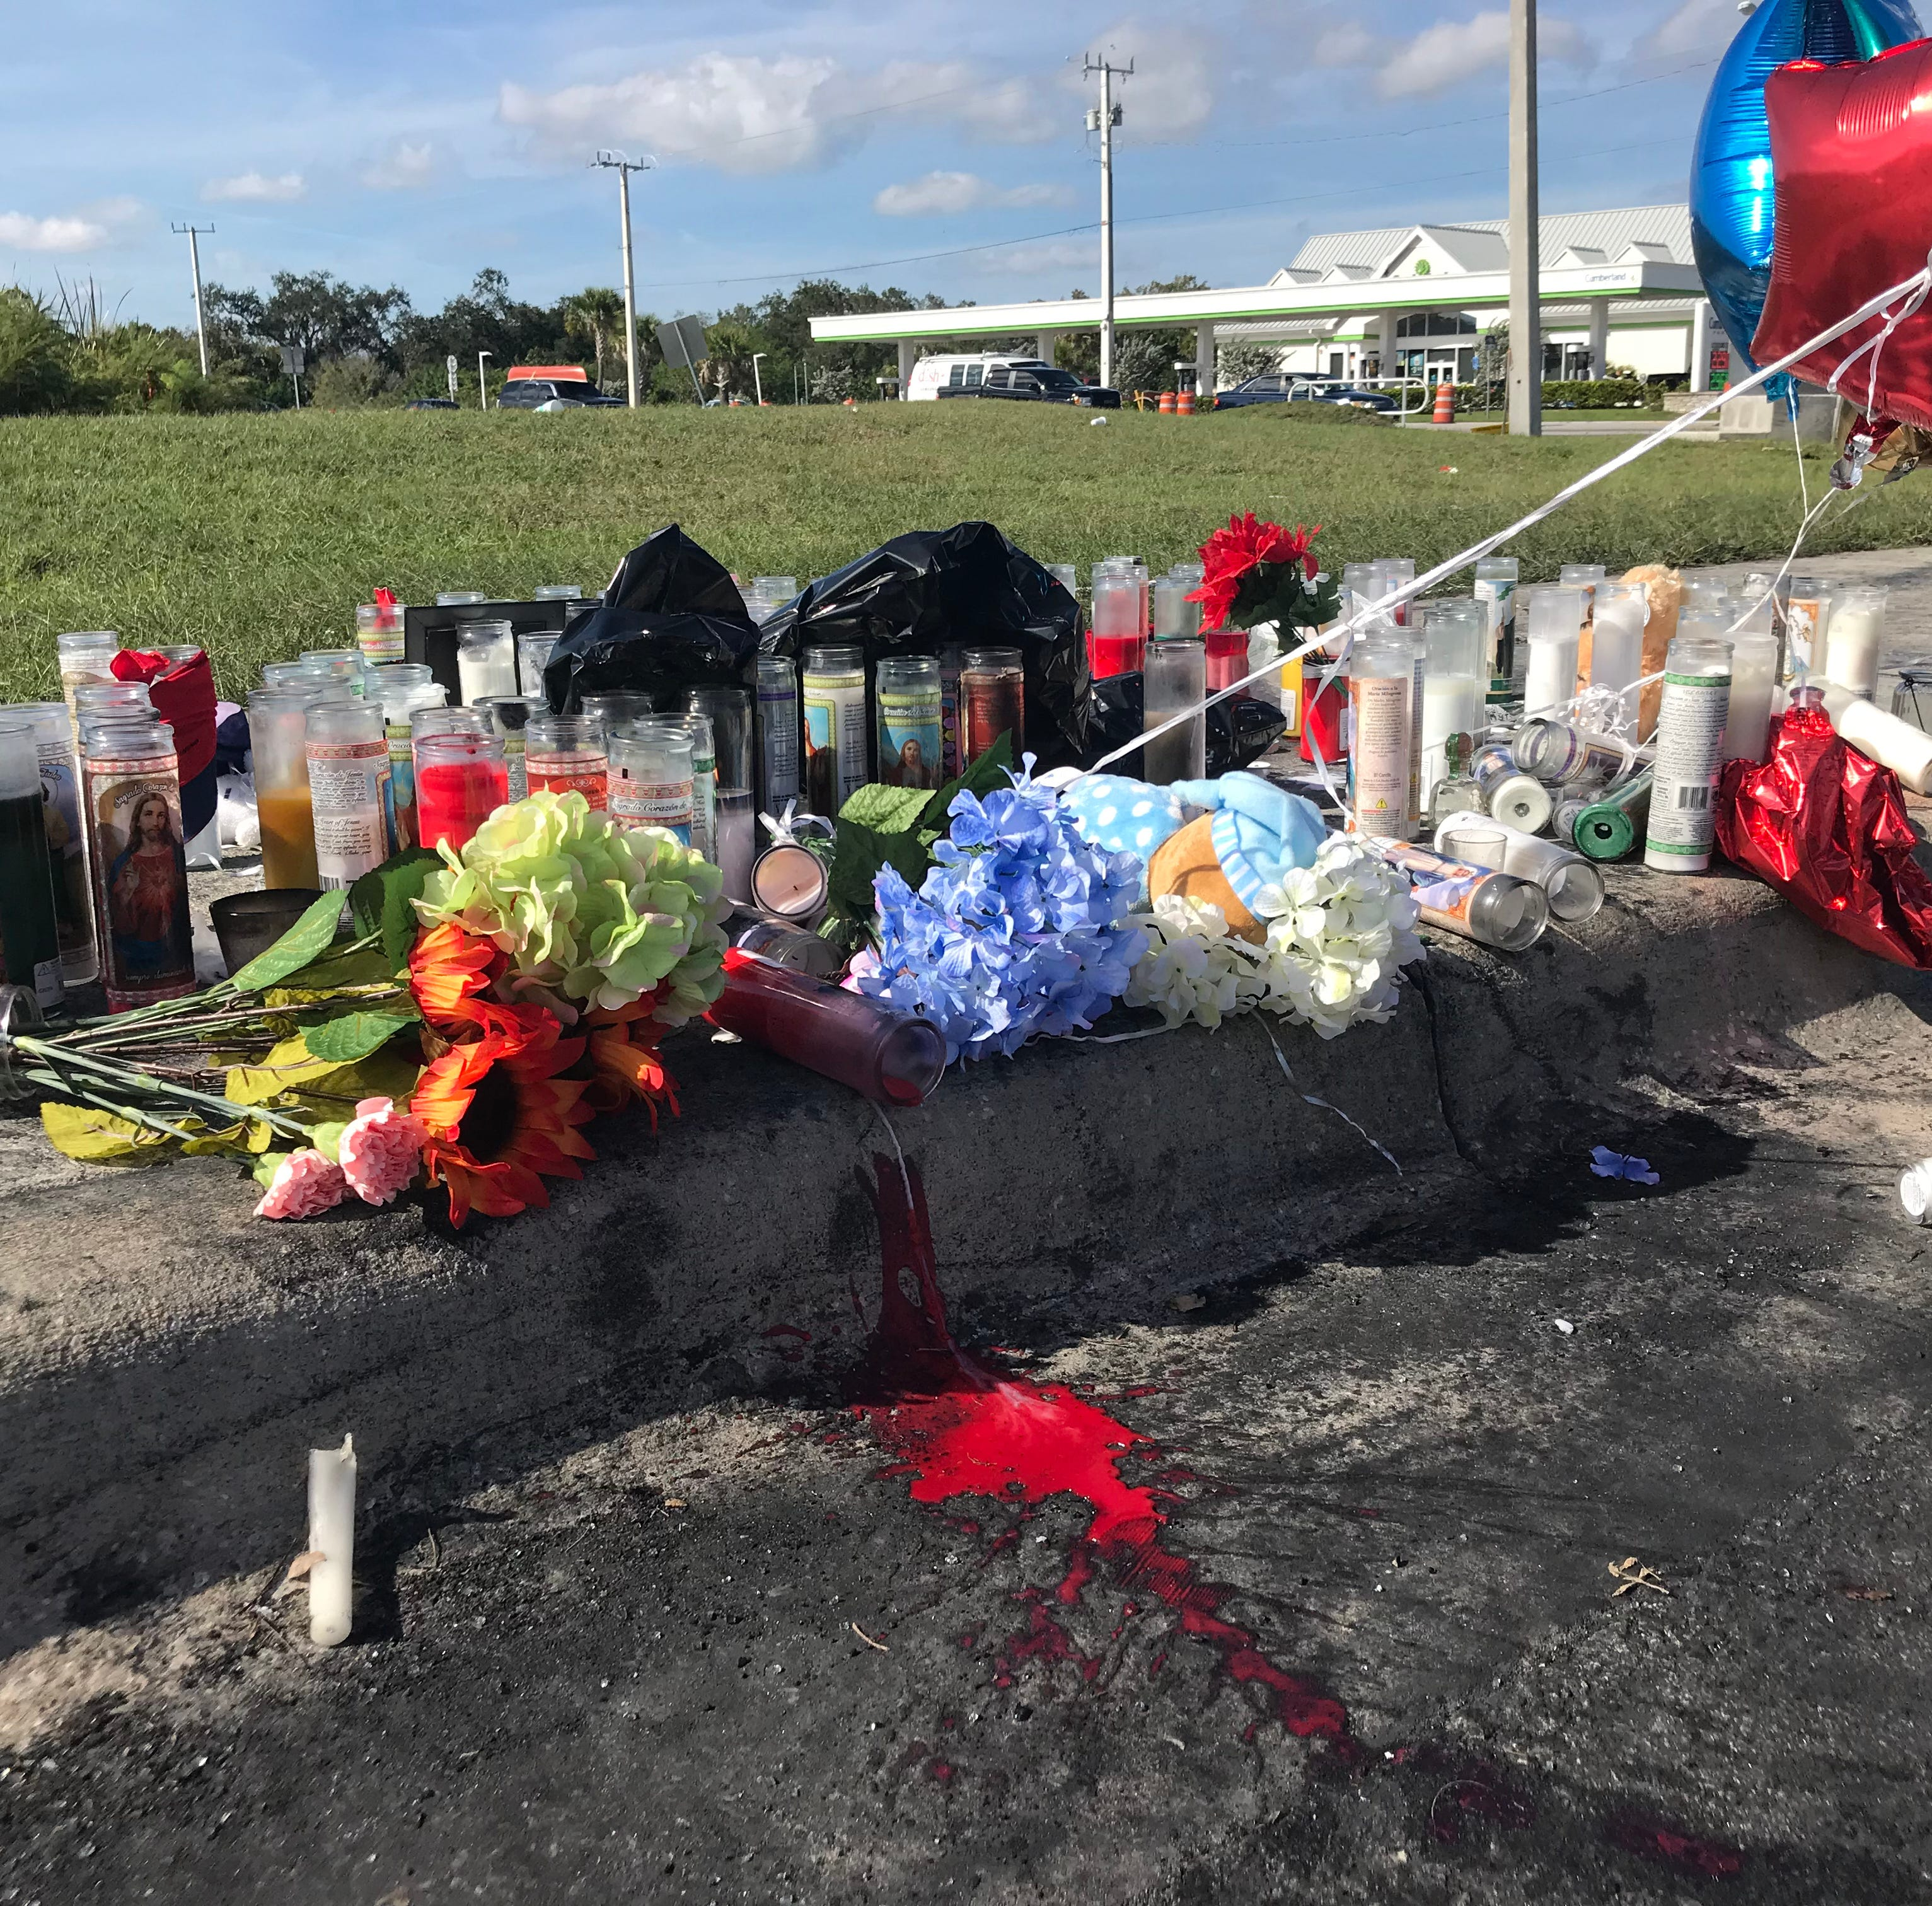 Firefighters get sheriff's escort because of threats after crash killing 5 in St. Lucie County